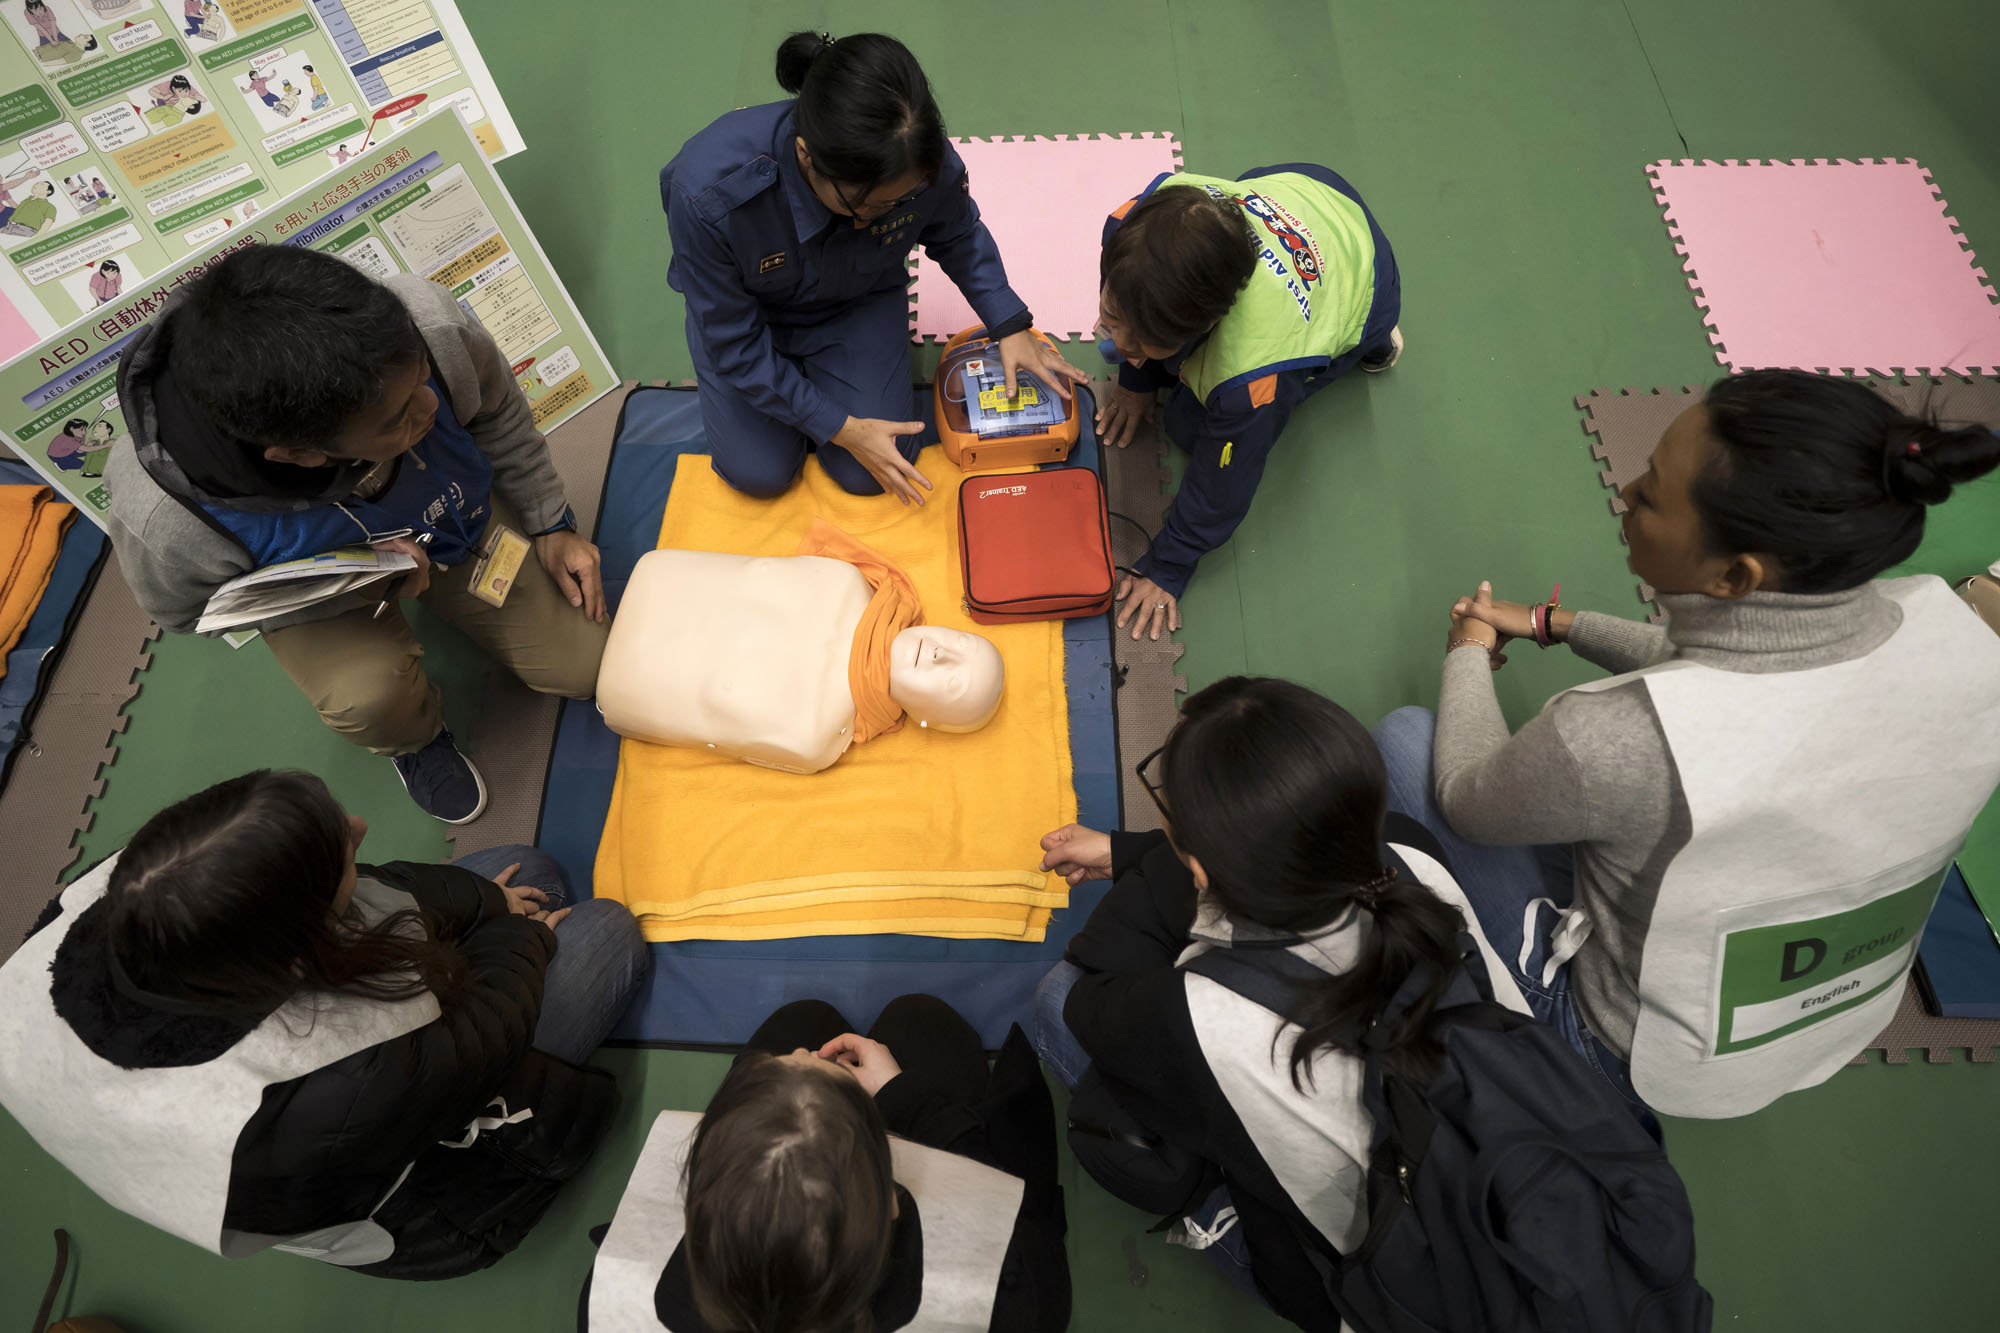 Participants learn how to perform cardiopulmonary resuscitation during a disaster preparedness drill for foreign residents in Tokyo on Jan. 16. | BLOOMBERG